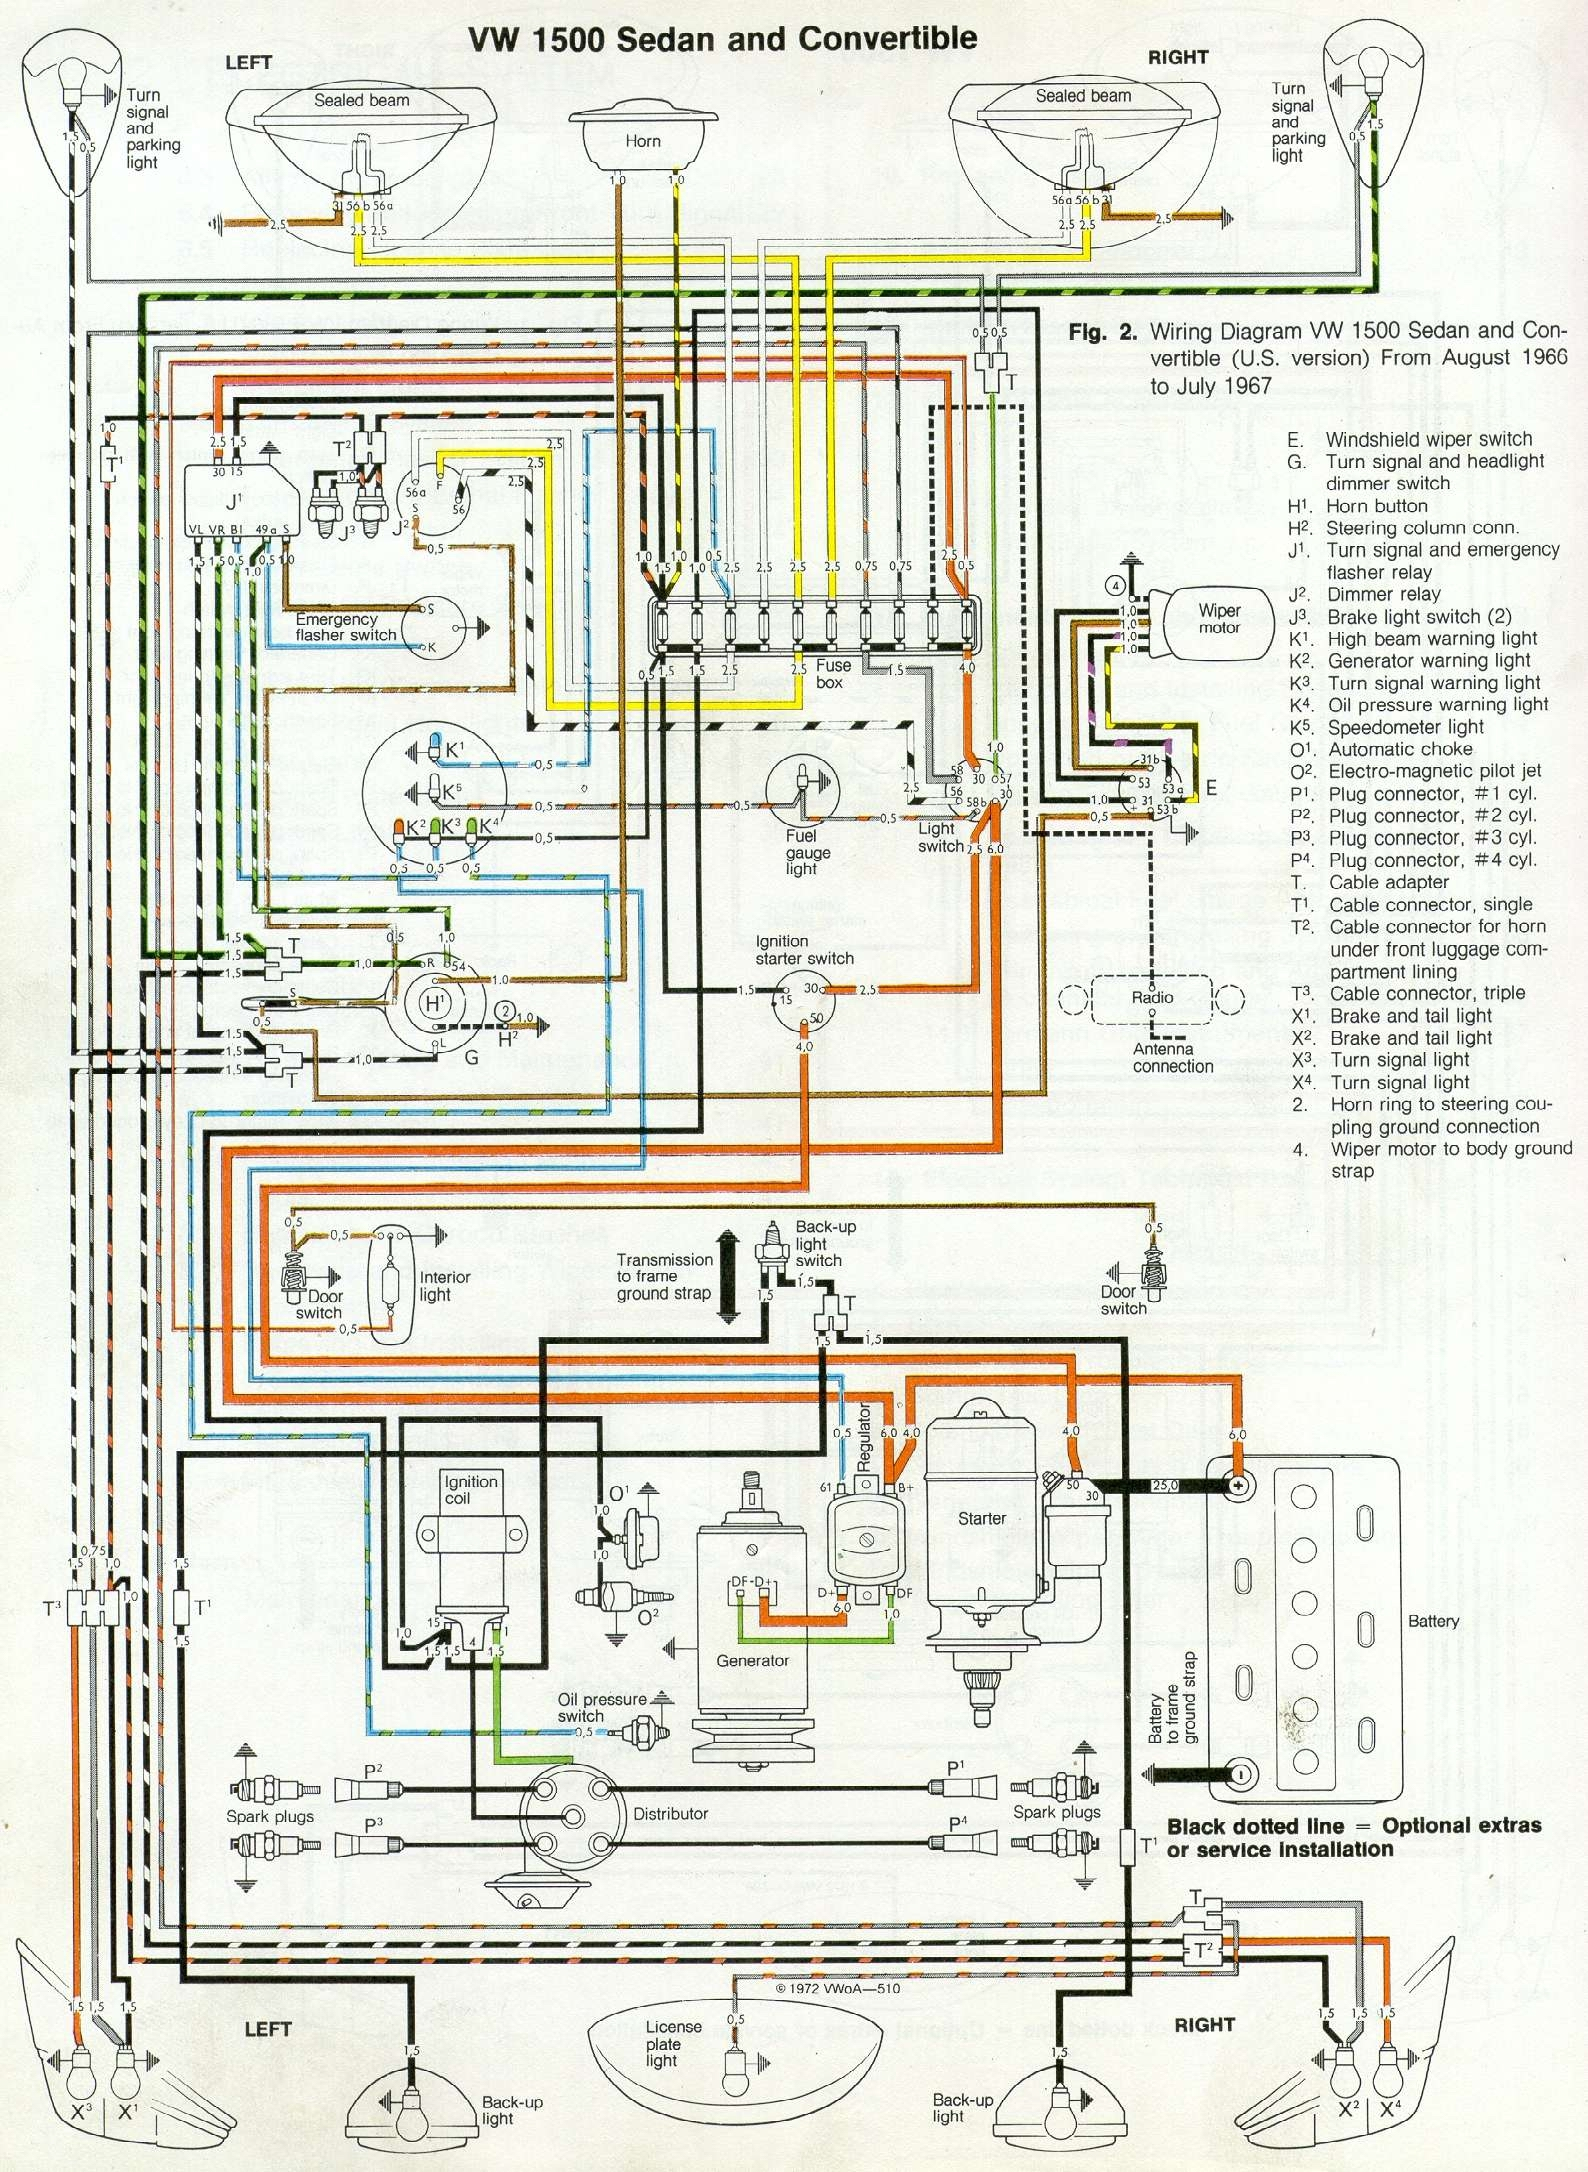 66 and 67 vw beetle wiring diagram 1967 vw beetle rh 1967beetle com 1973 VW  Beetle Fuse Box Diagram New Beetle Fuse Diagram